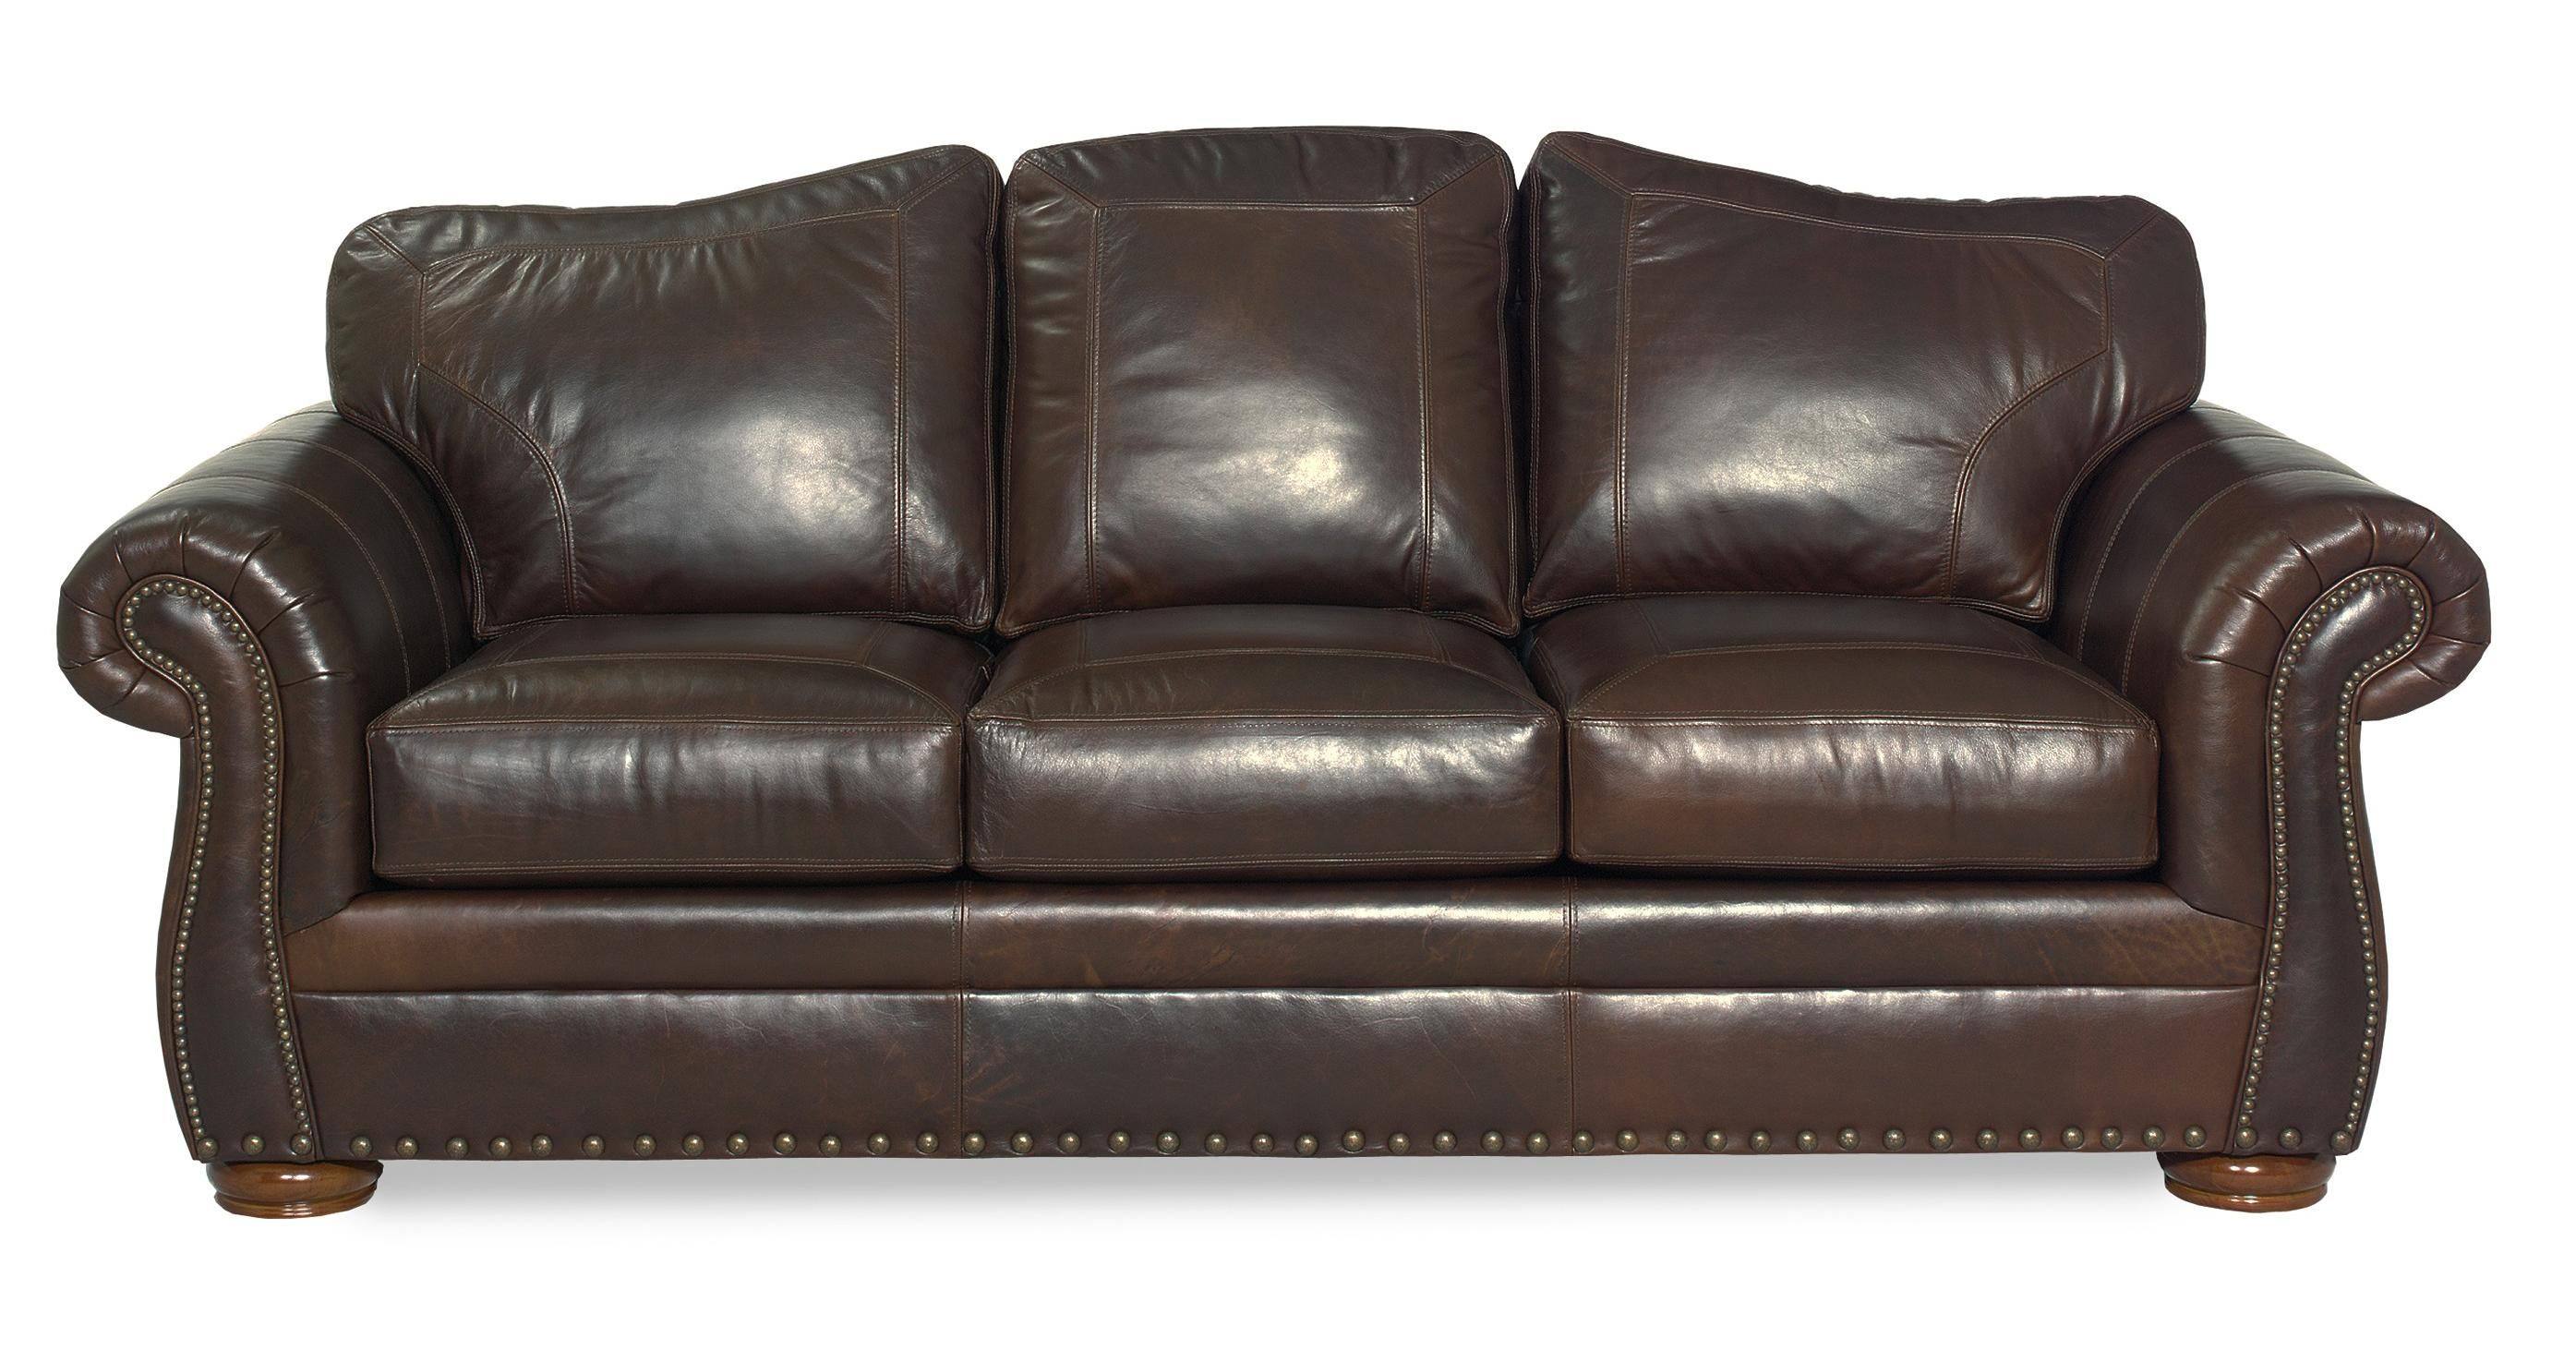 Wondrous Traditional Leather Sofa With Camelback And Rolled Arms Ibusinesslaw Wood Chair Design Ideas Ibusinesslaworg